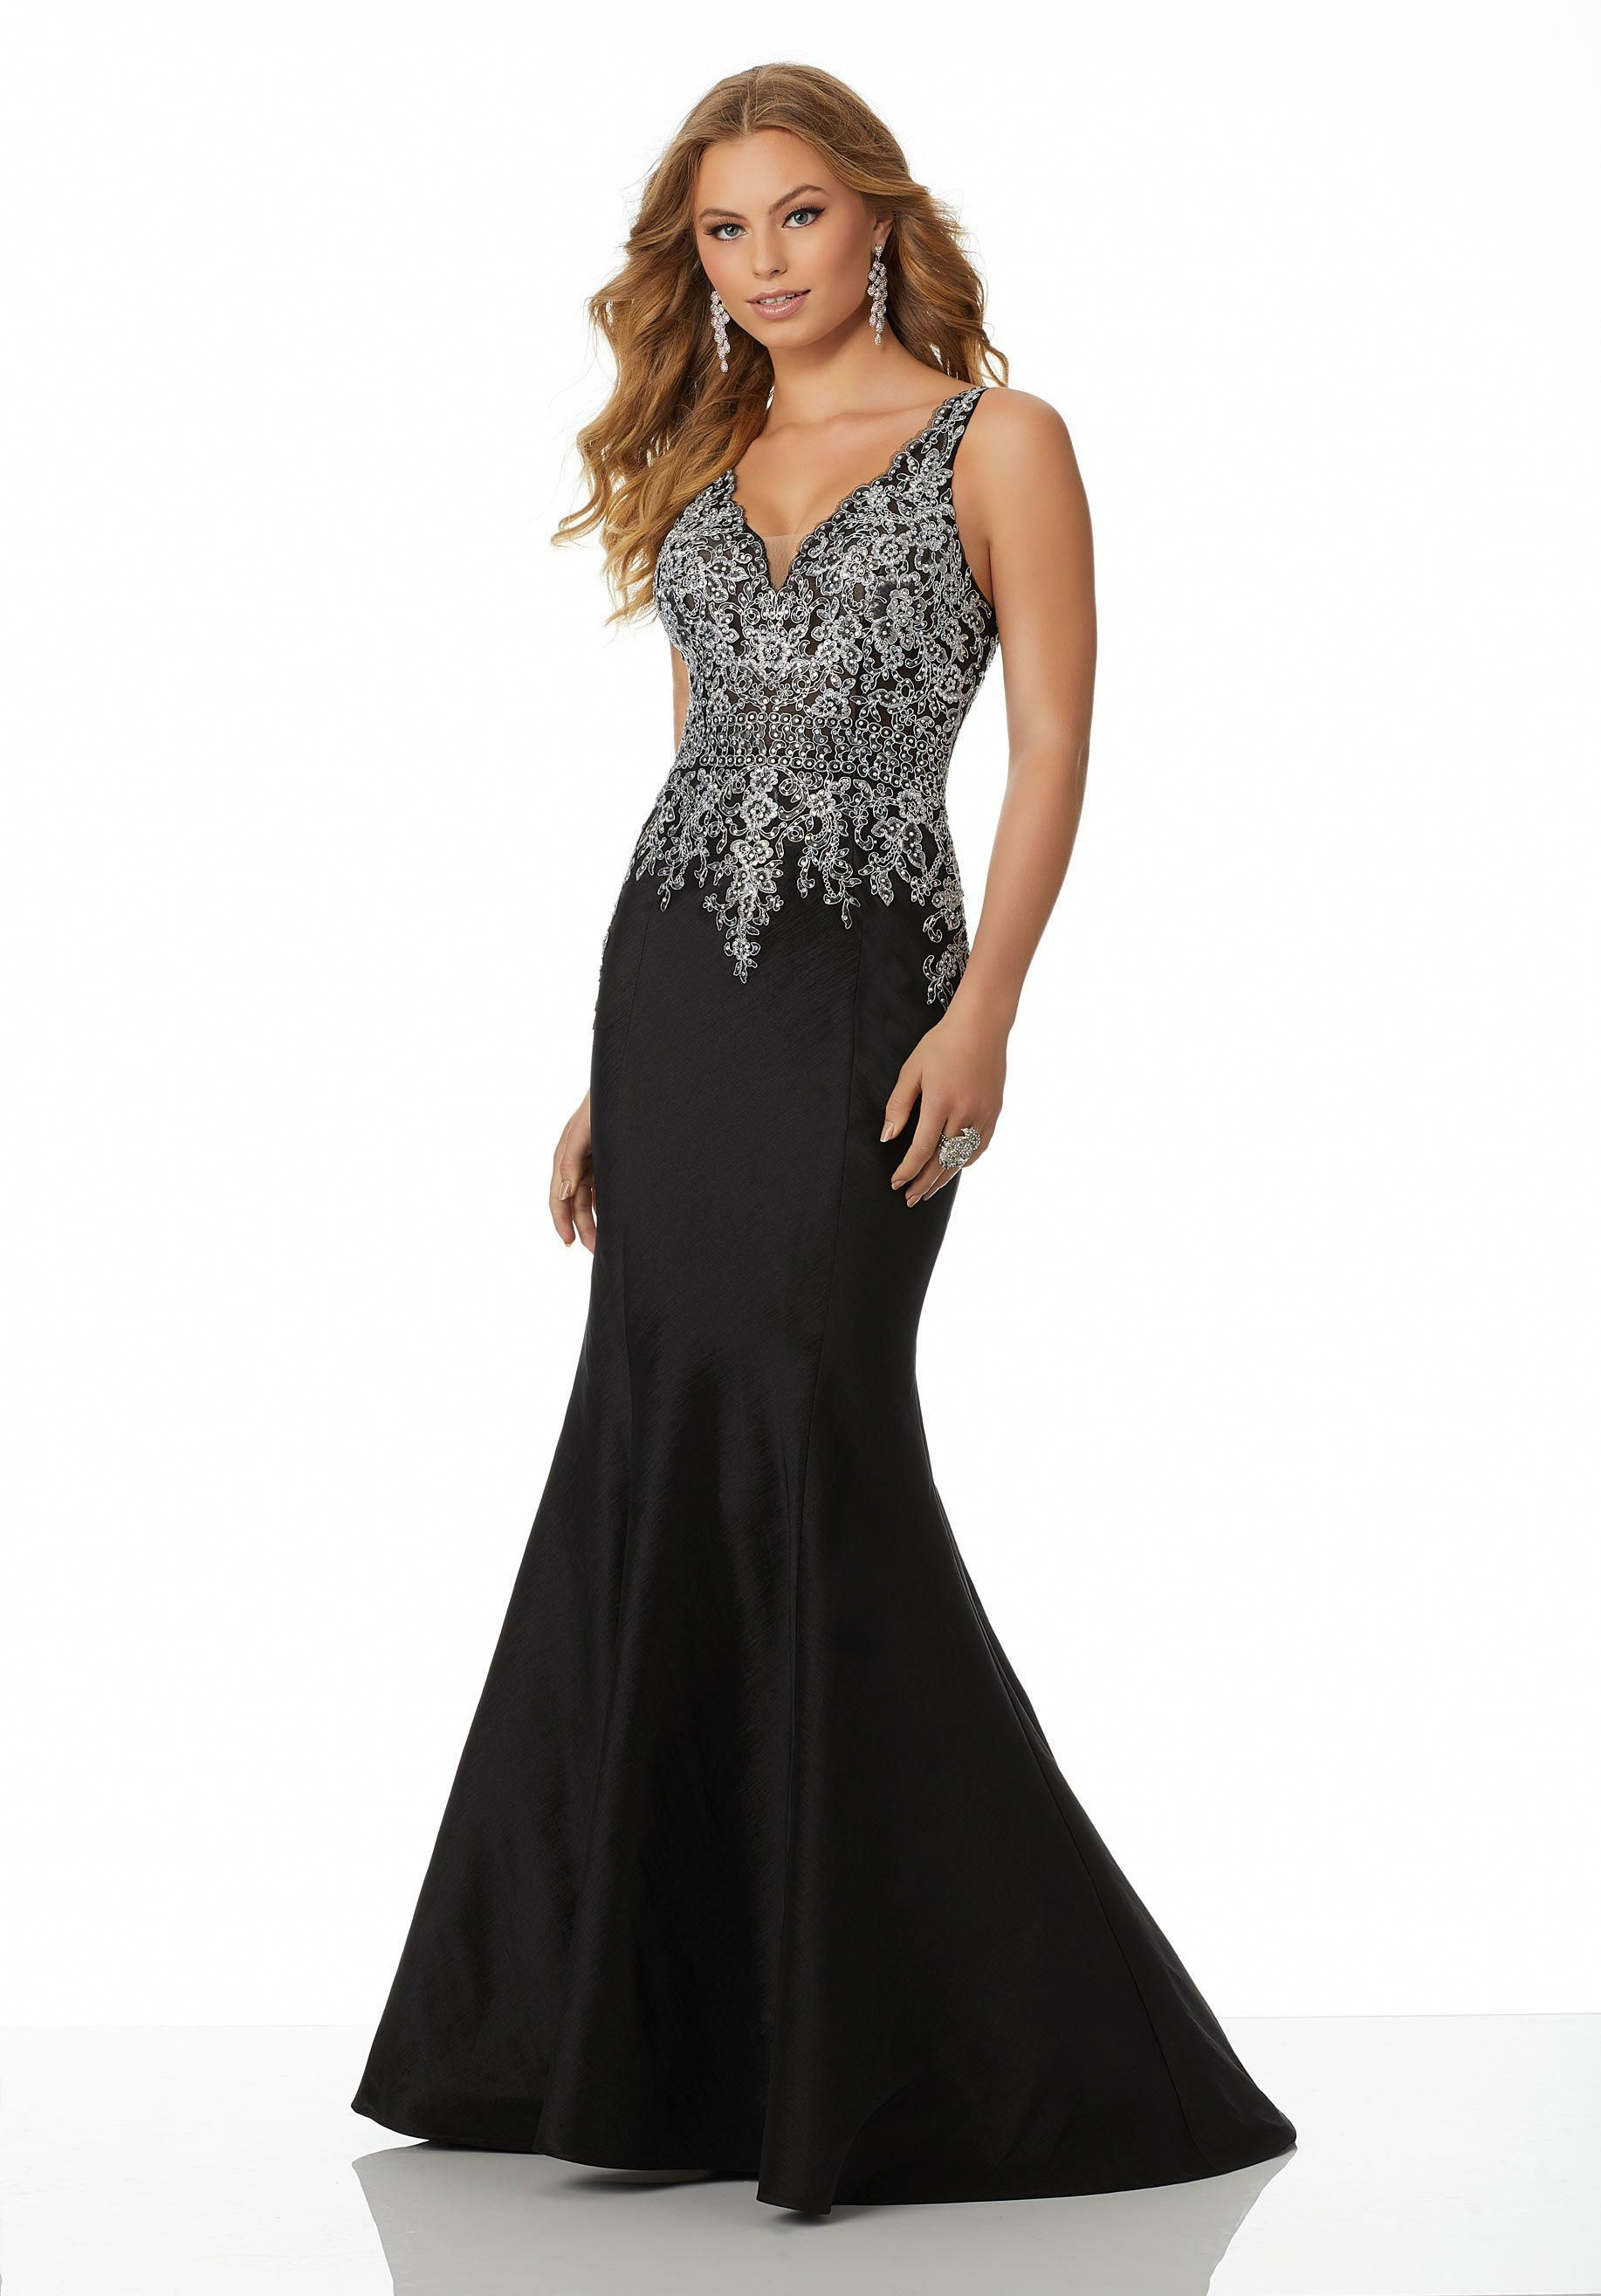 84cc1012a67 Prom Dress 98035 Beaded and Embroidered Net on Stretch Taffeta ...